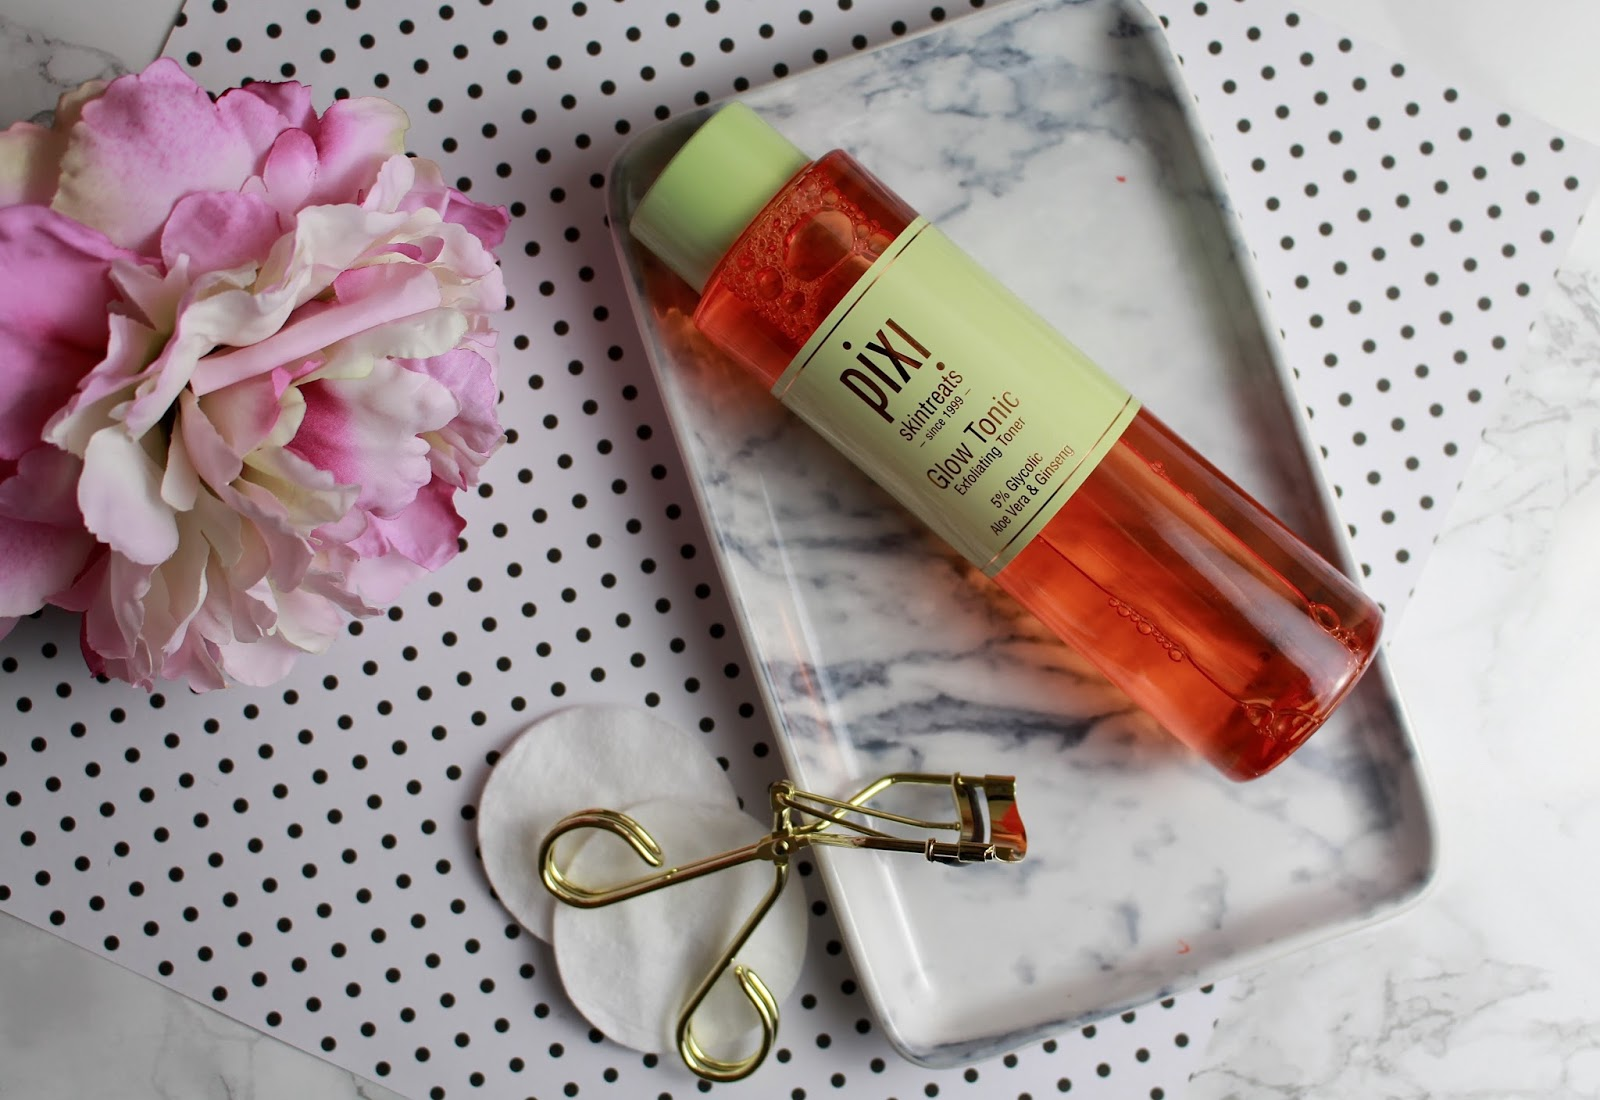 Pixi Beauty Review, Pixi Glow Tonic, Pixi Glow Tonic Review